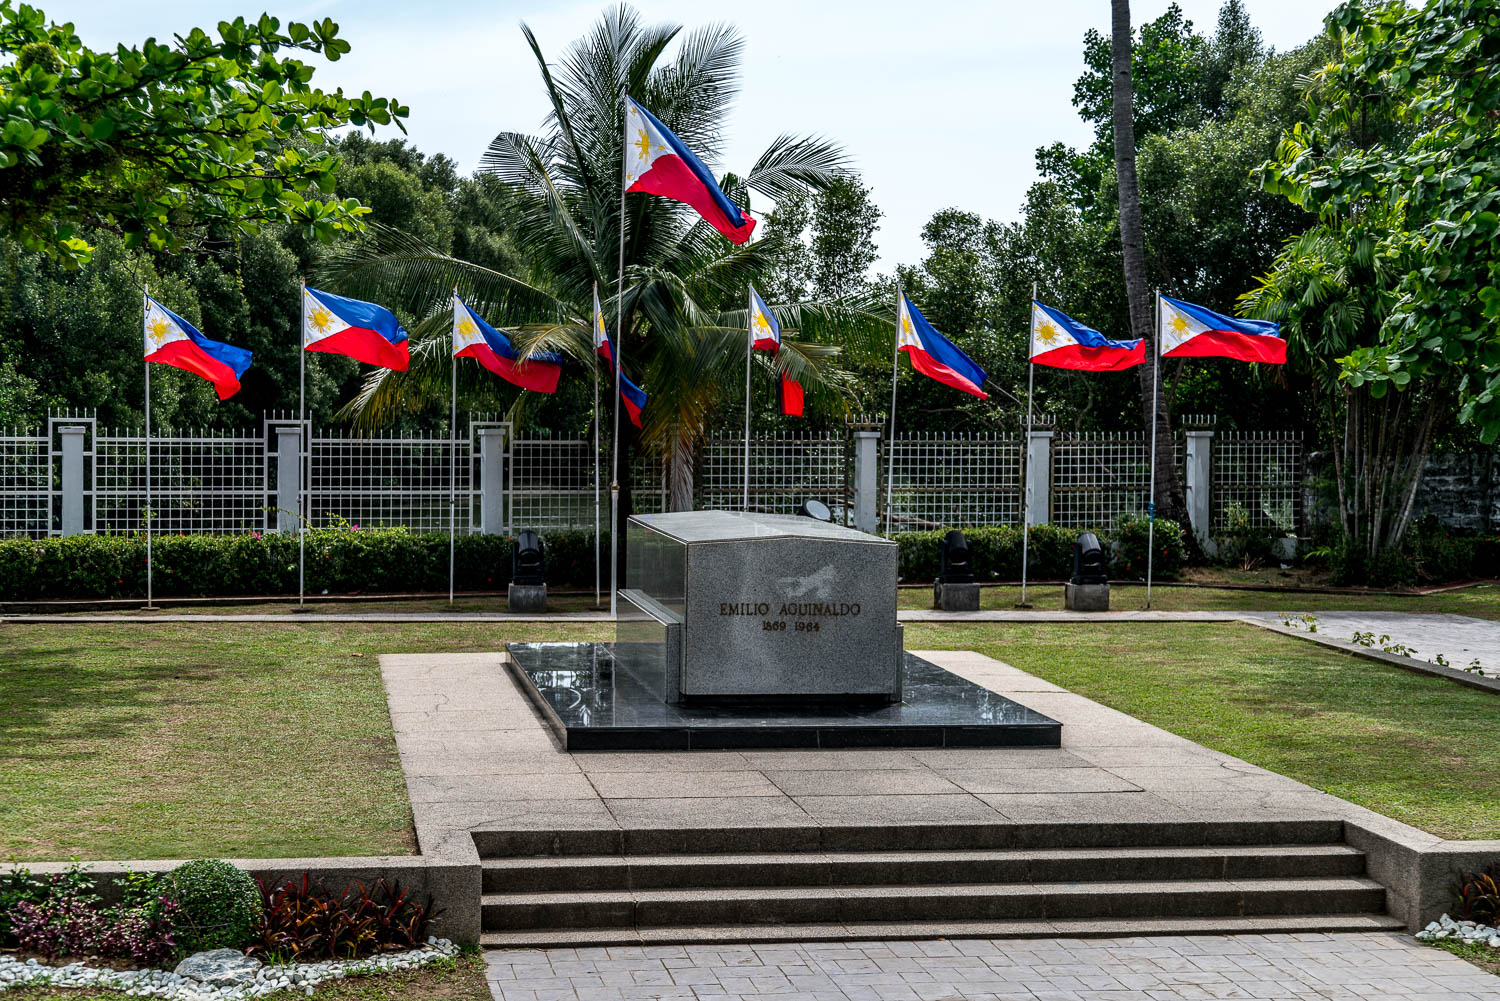 Aguinaldo's tomb is found in the middle of the garden at the back of the house.